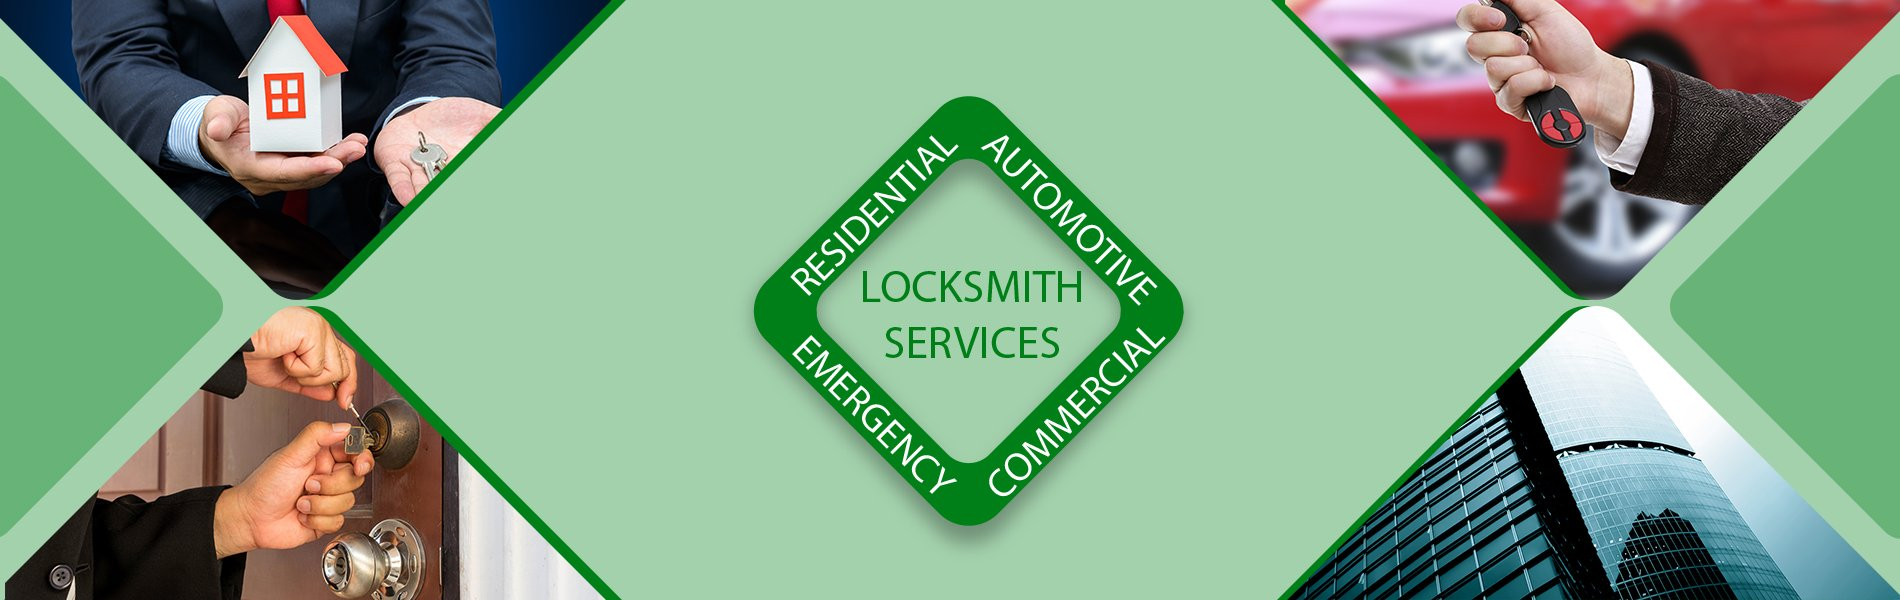 VA Locksmith Store 888-870-0547